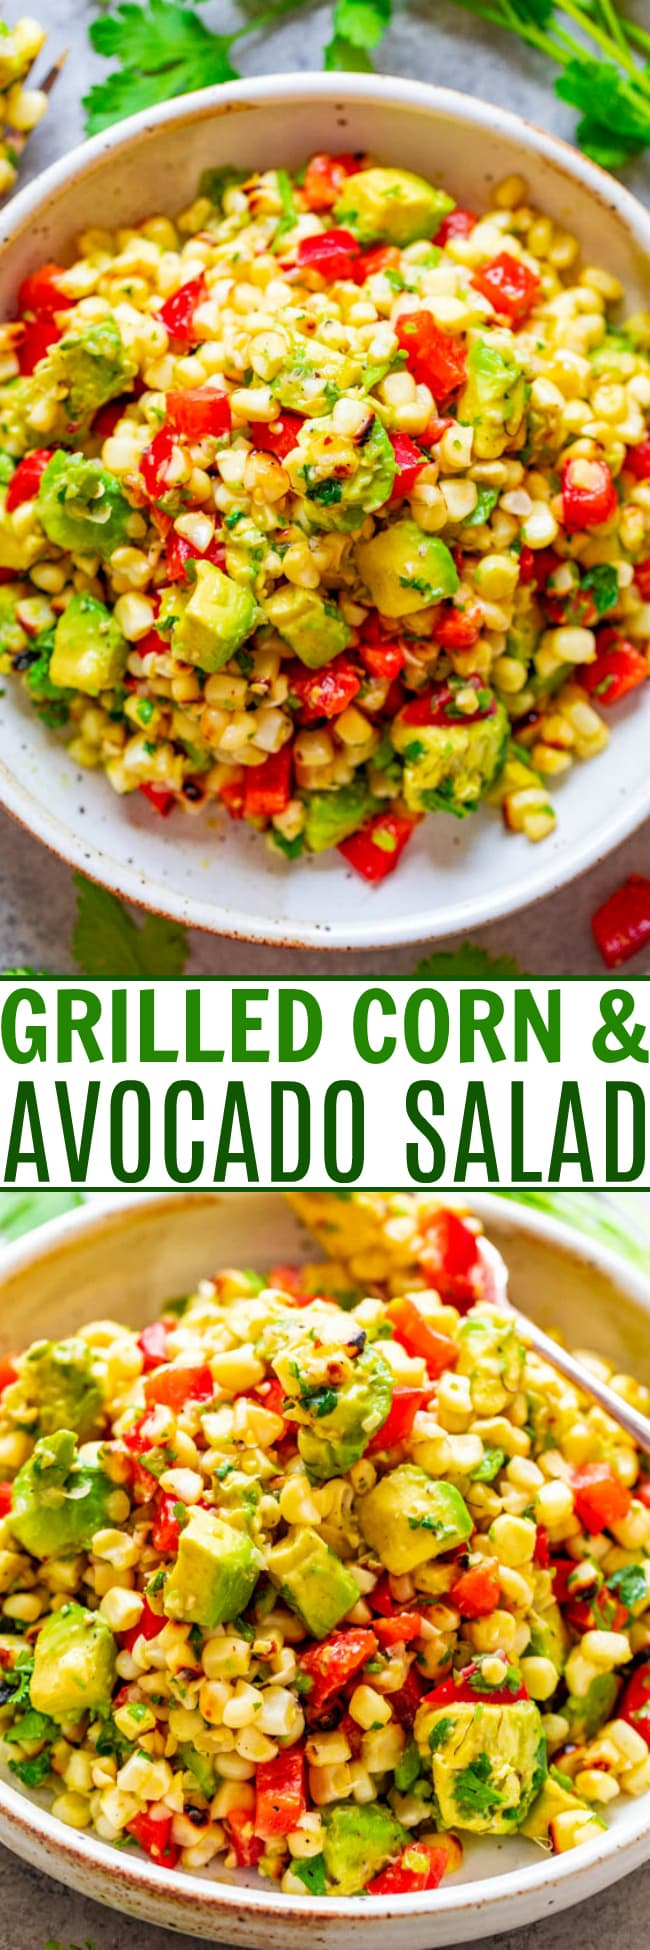 Grilled Avocado Corn Salad — An EASY and HEALTHY salad that's ready in 10 minutes and you won't be able to stop eating it!! Juicy corn, creamy avocado, cilantro, and fresh lime juice is a FIESTA in your mouth!!